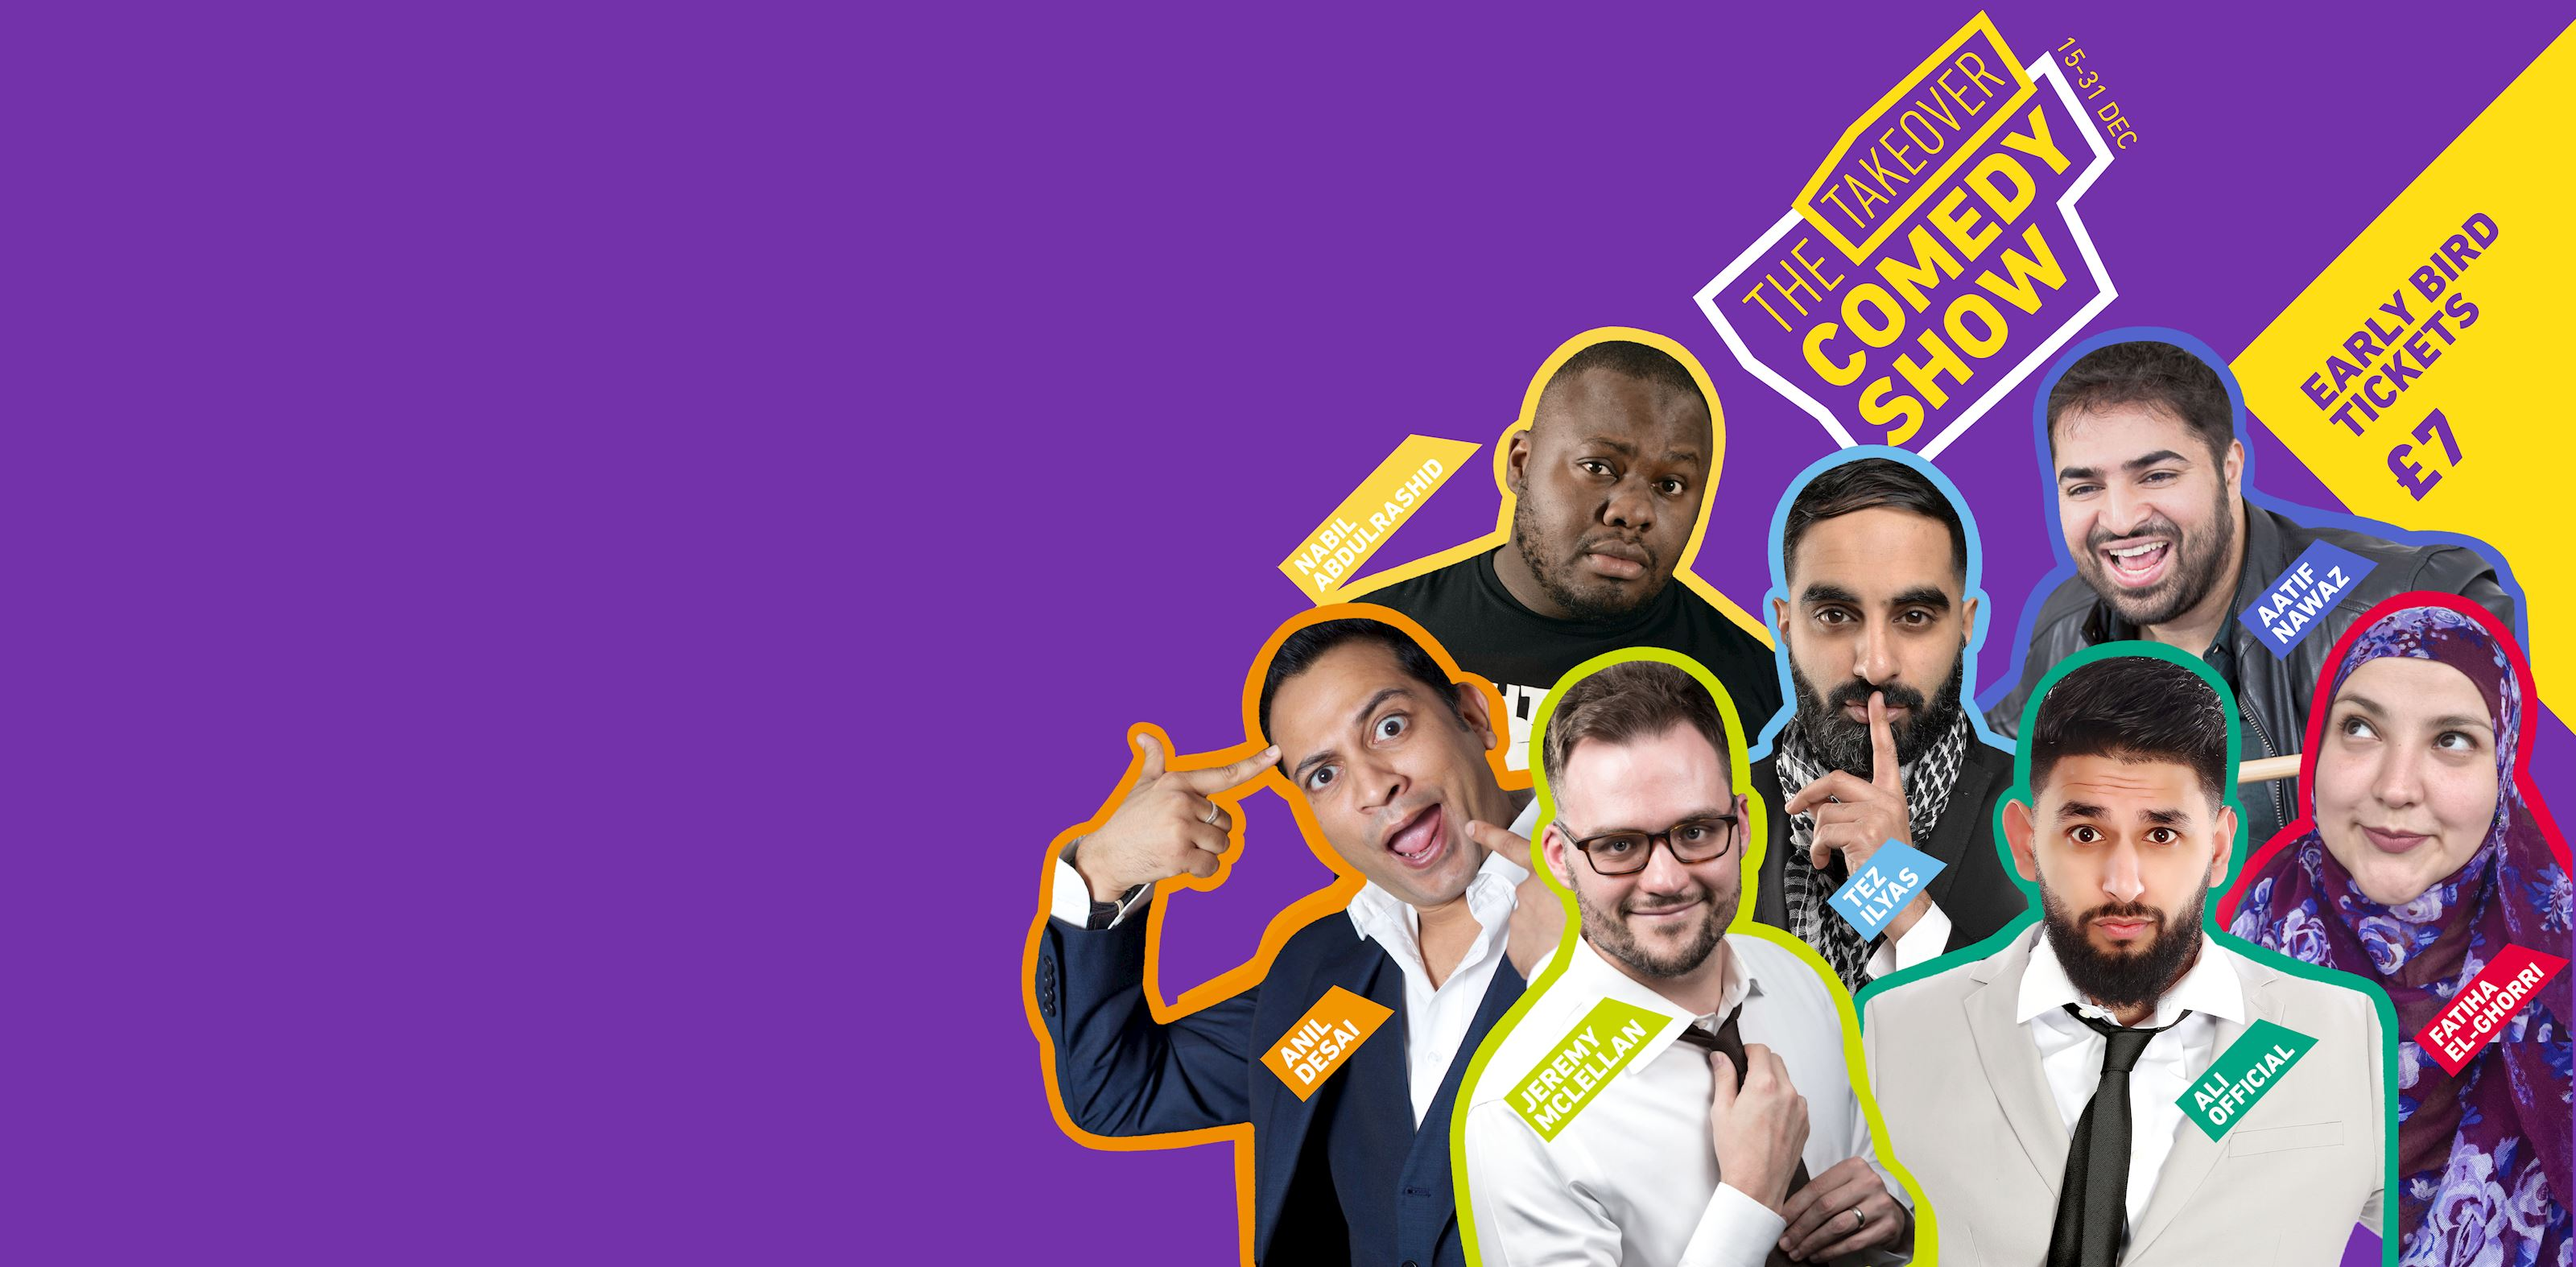 The Takeover Comedy Show 2018